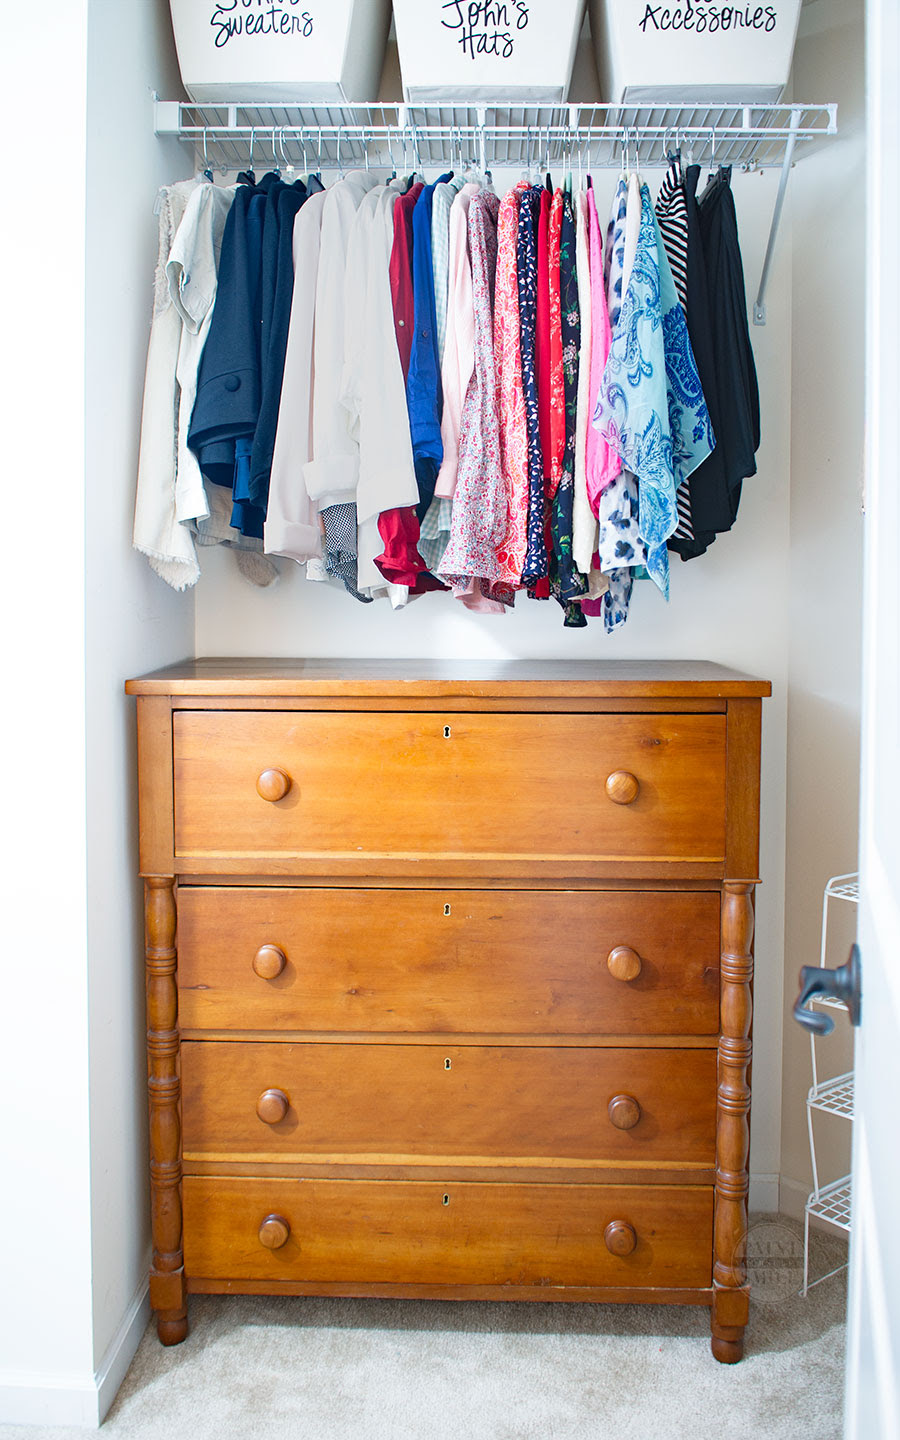 Easy Closet Space Solutions on a Budget - Paint Yourself A Smile